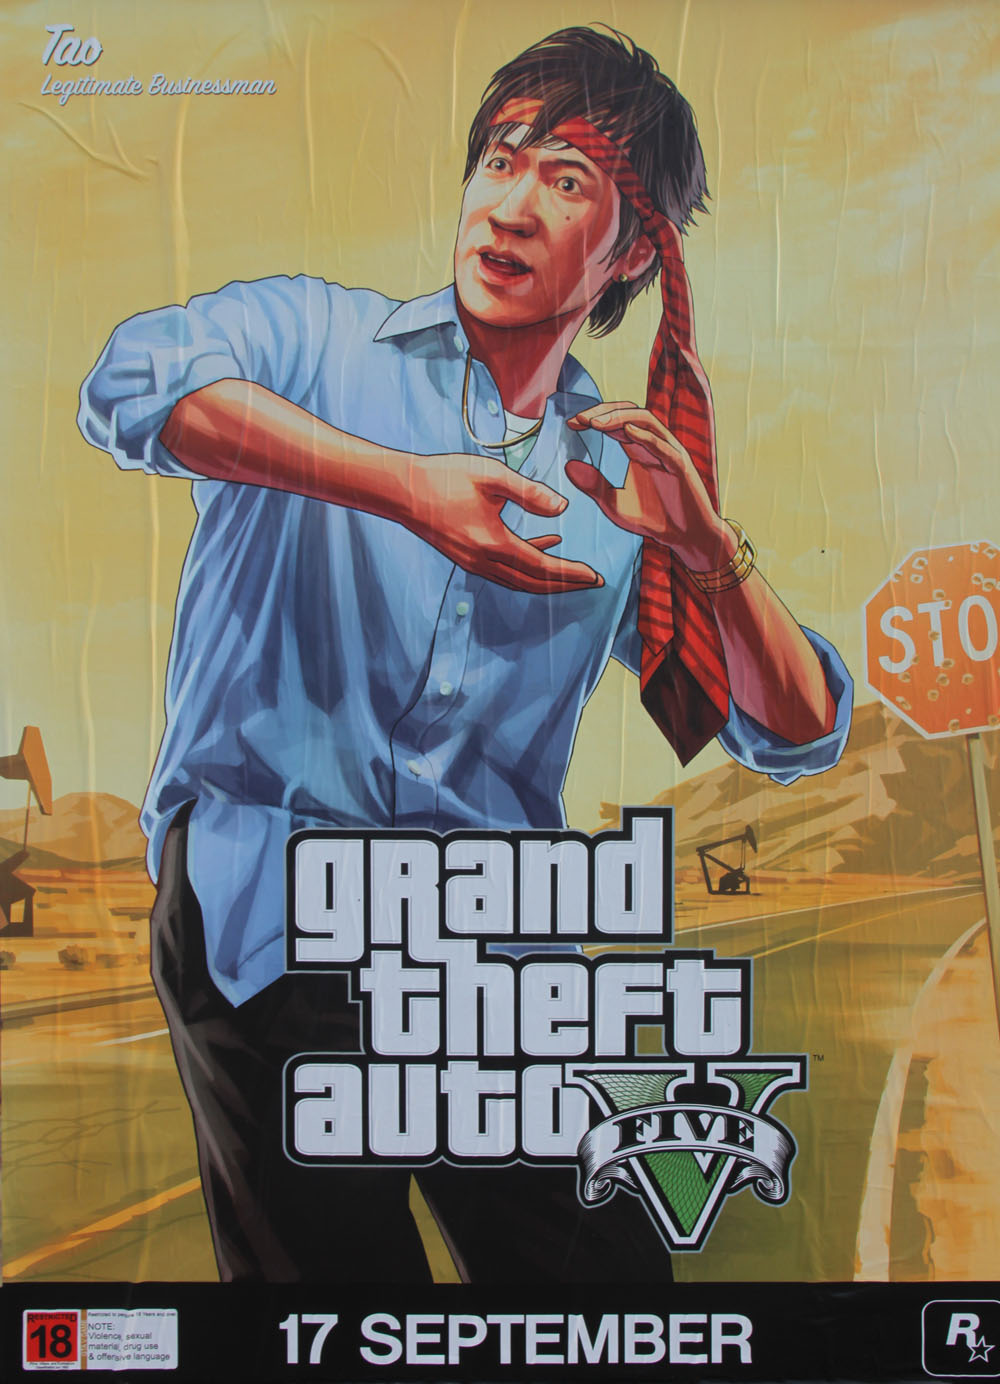 gta-5-artwork-tao.jpg